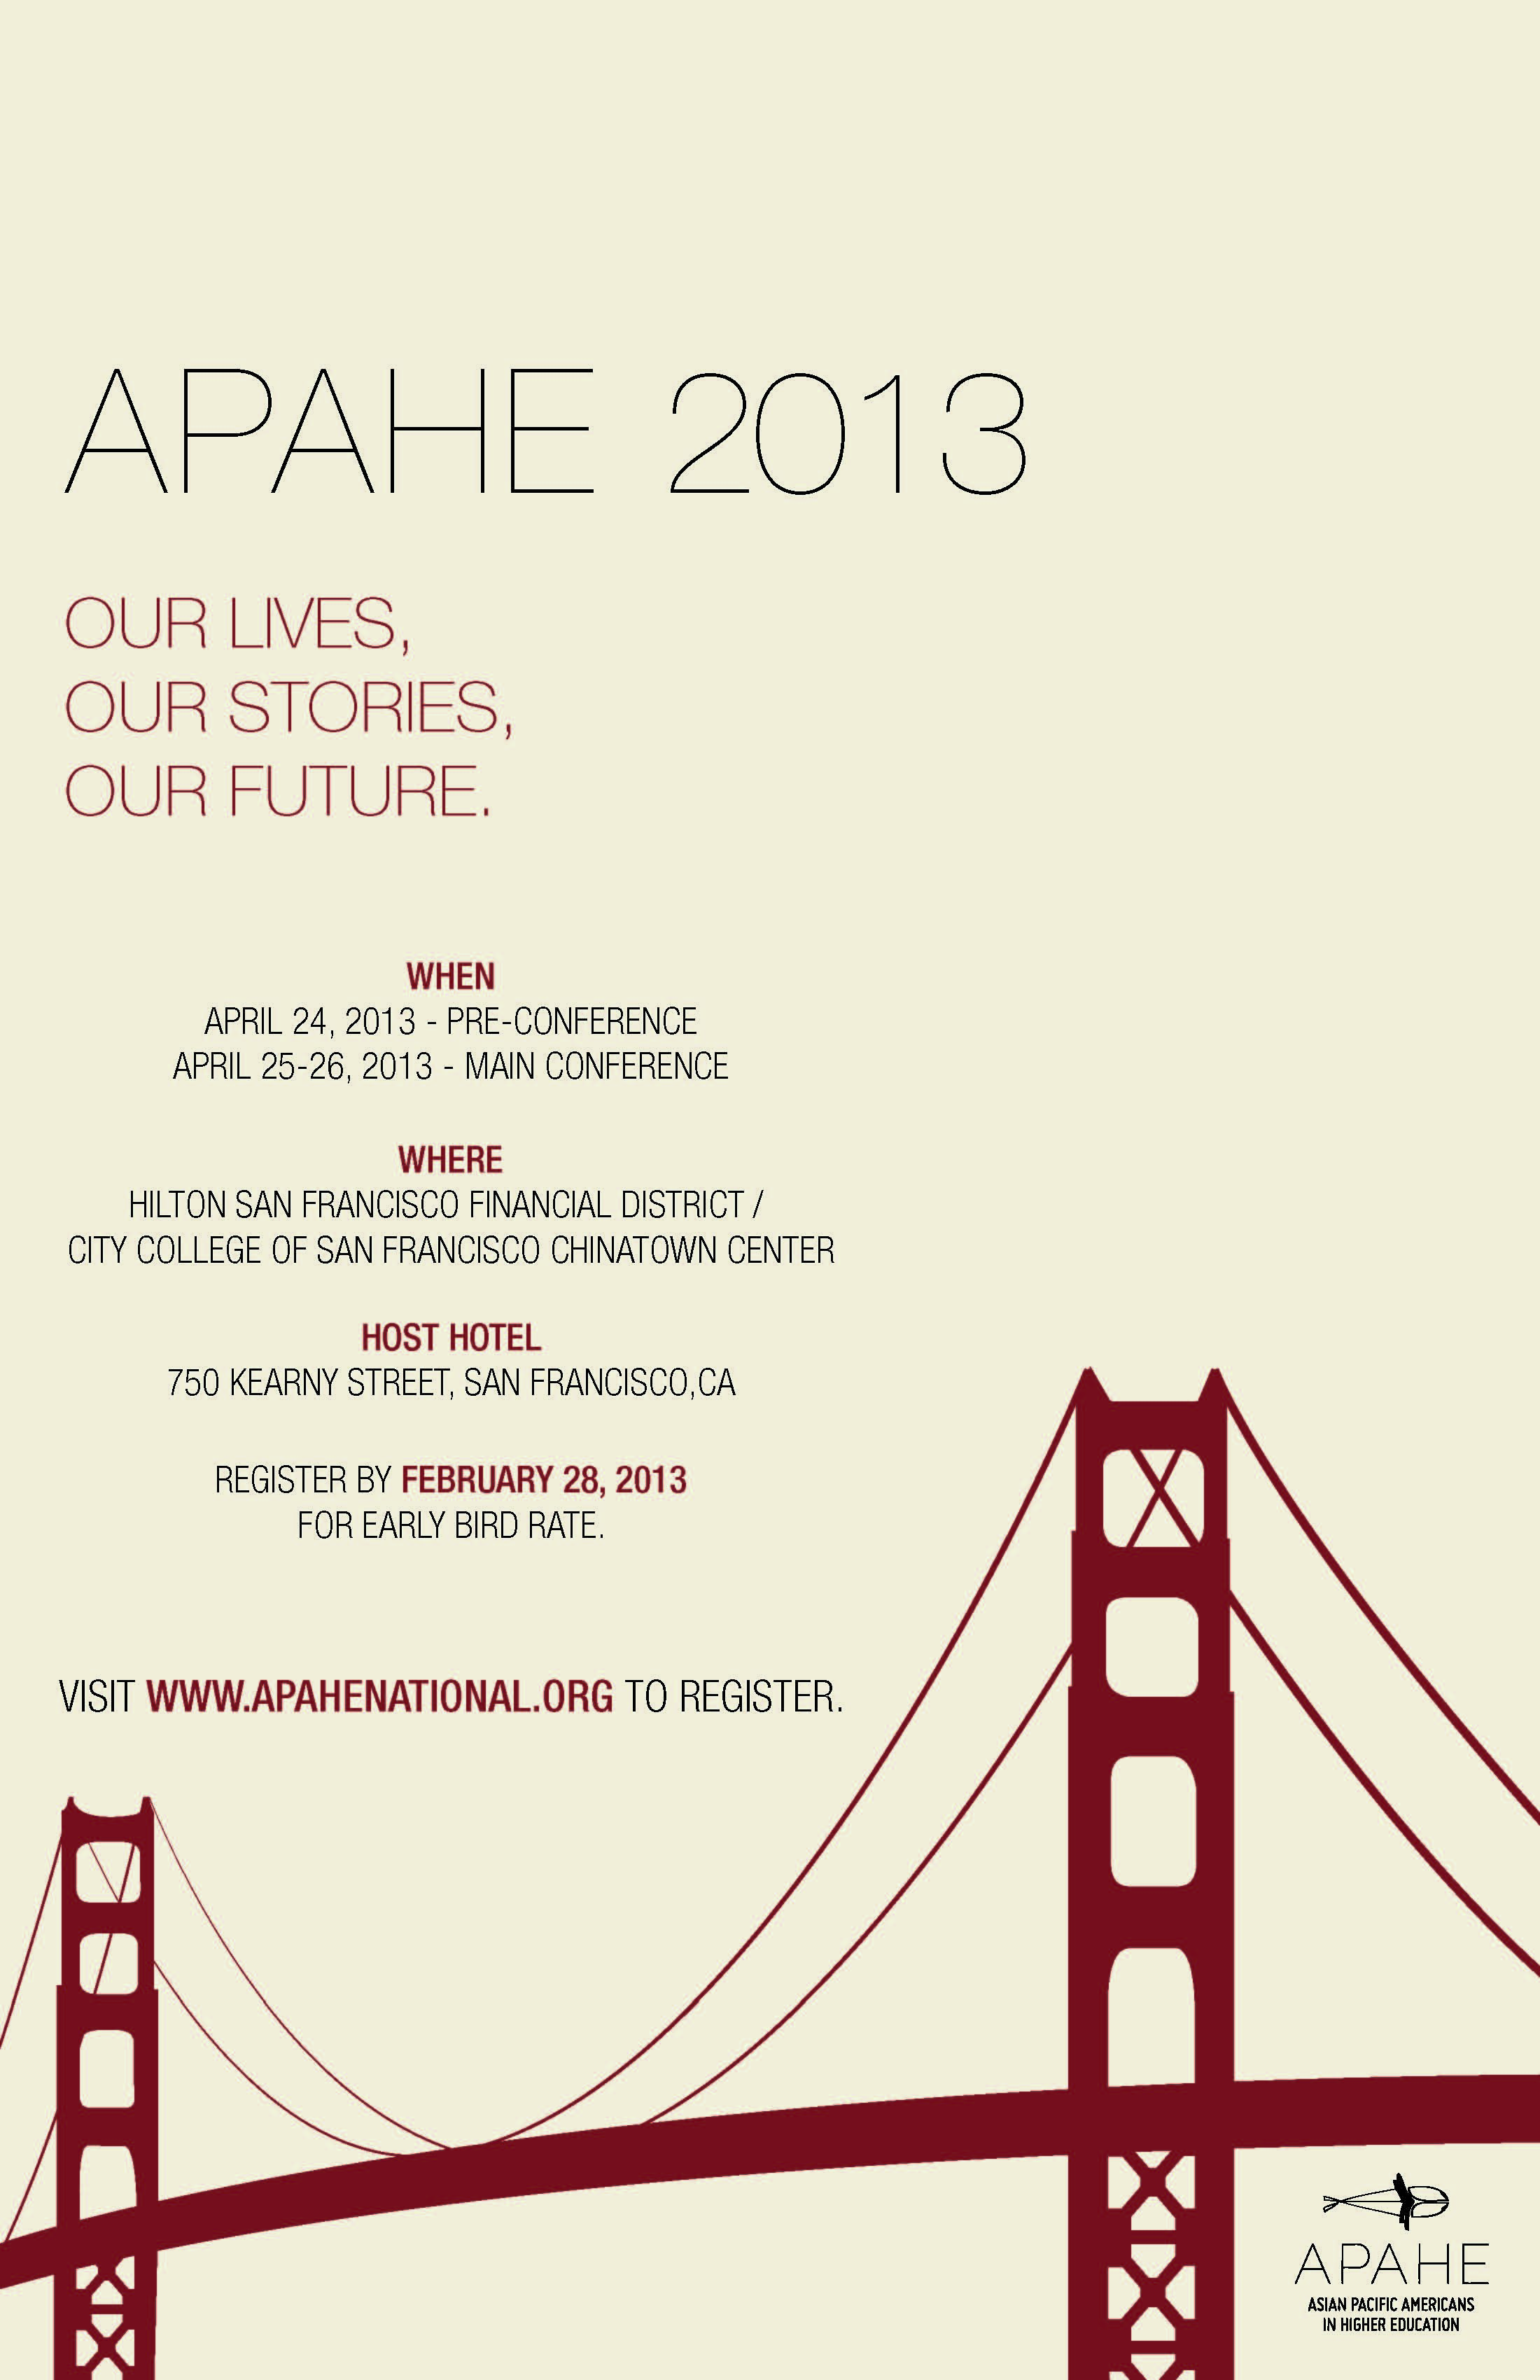 REGISTER NOW FOR APAHE 2013 CONFERENCE – EARLY BIRD RATE THROUGH FEBRUARY 28, 2013